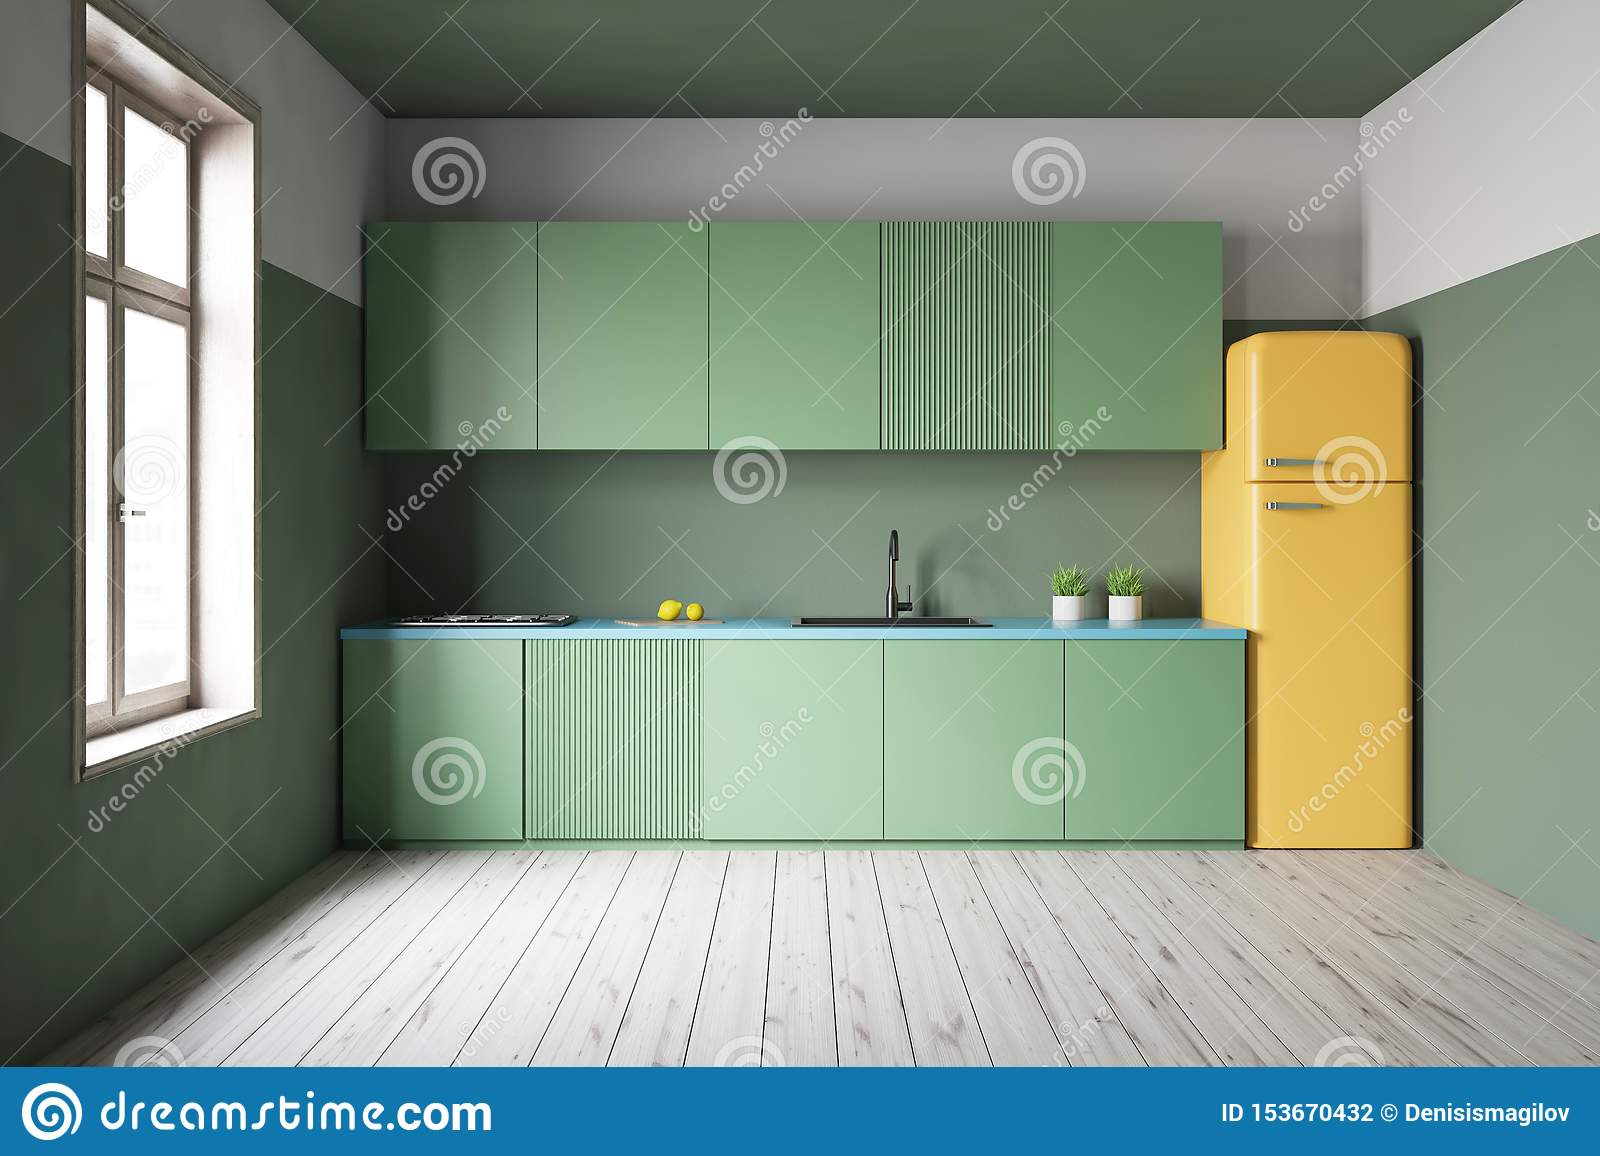 Green Kitchen Interior With Countertops And Fridge Stock ...